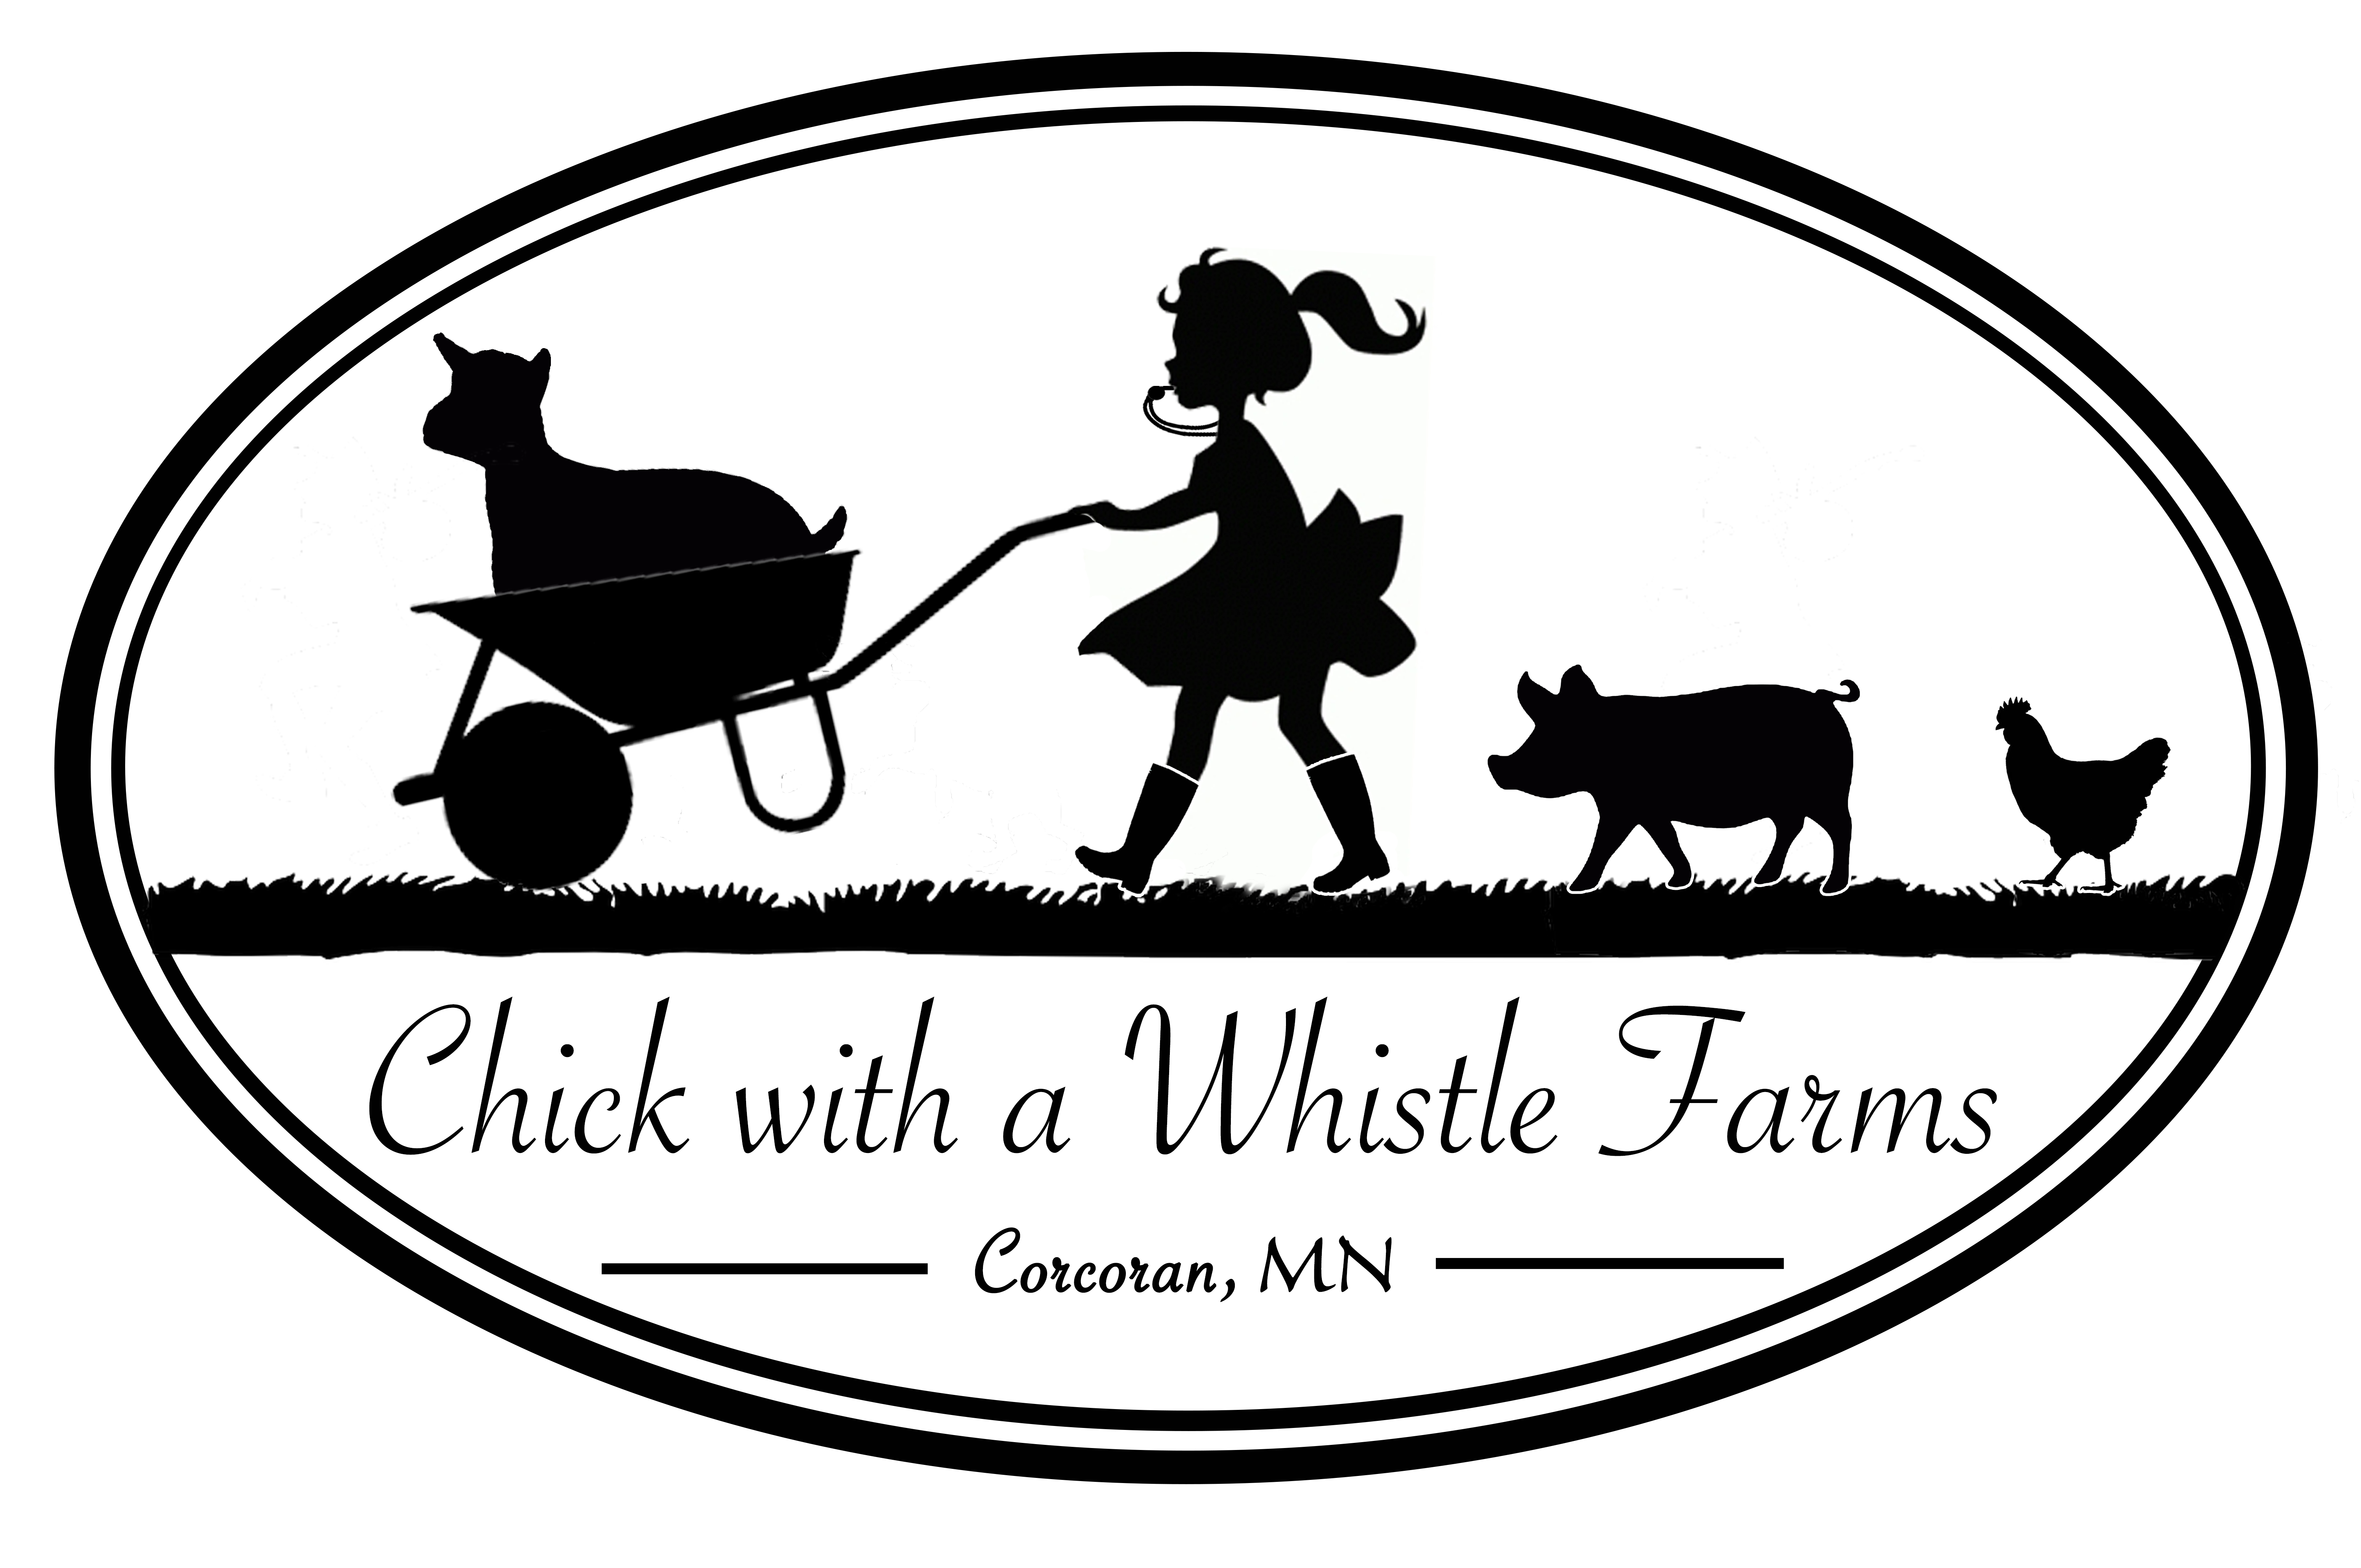 Chick with a Whistle Farms